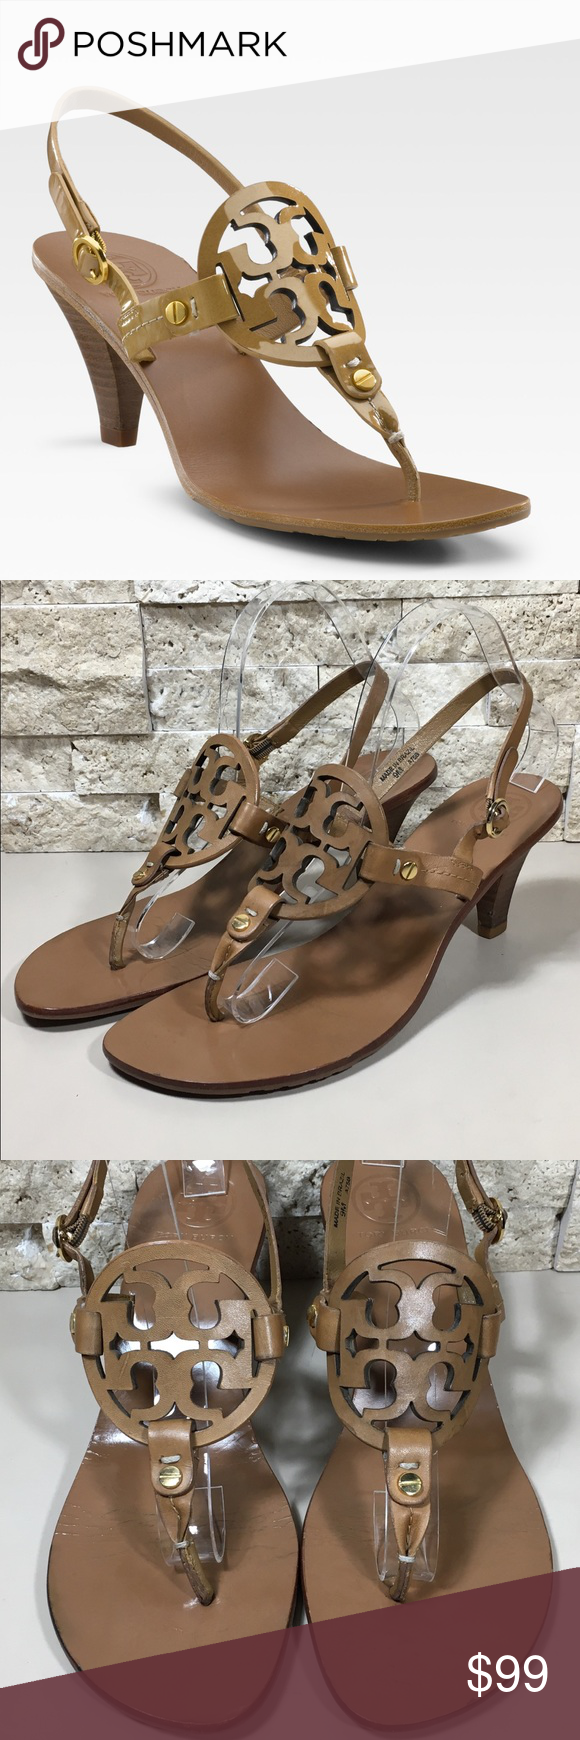 ad16f74dca818f Tory Burch Holly Logo Sandals Heel Size 9